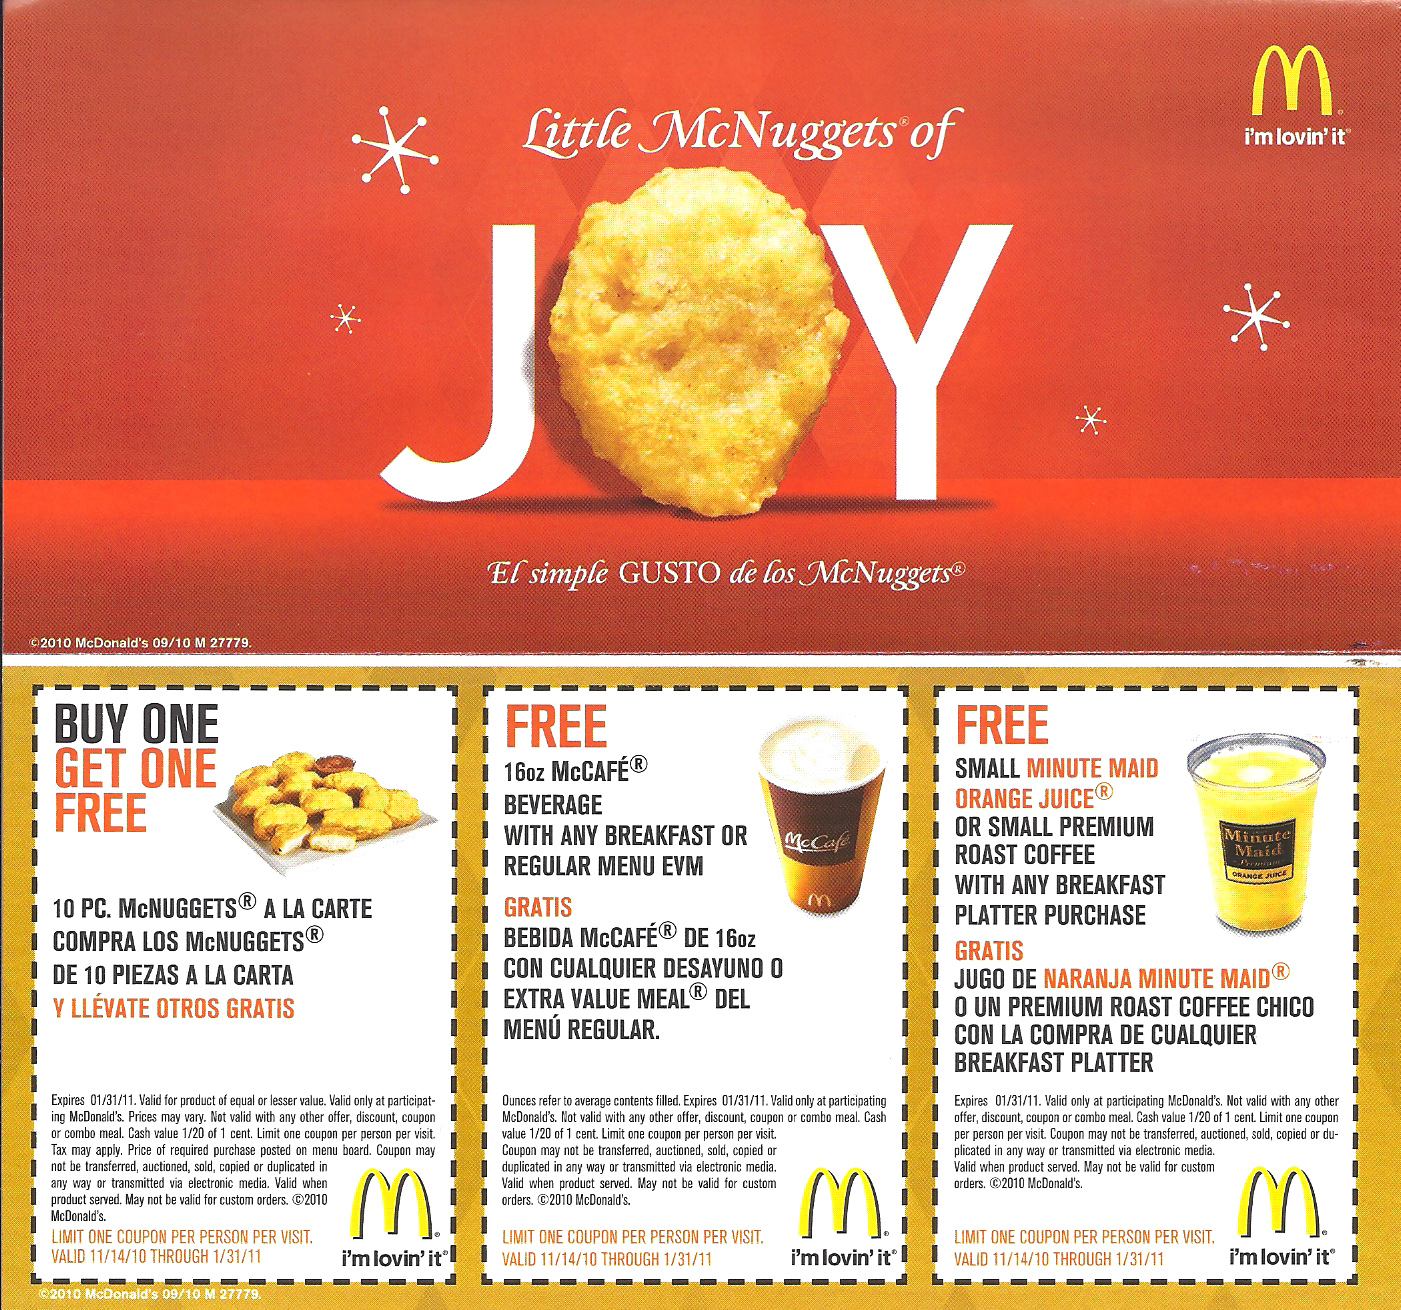 Mcdonalds Coupon Booklet Free (3) – Printable Coupons Online - Free Printable Mcdonalds Coupons Online